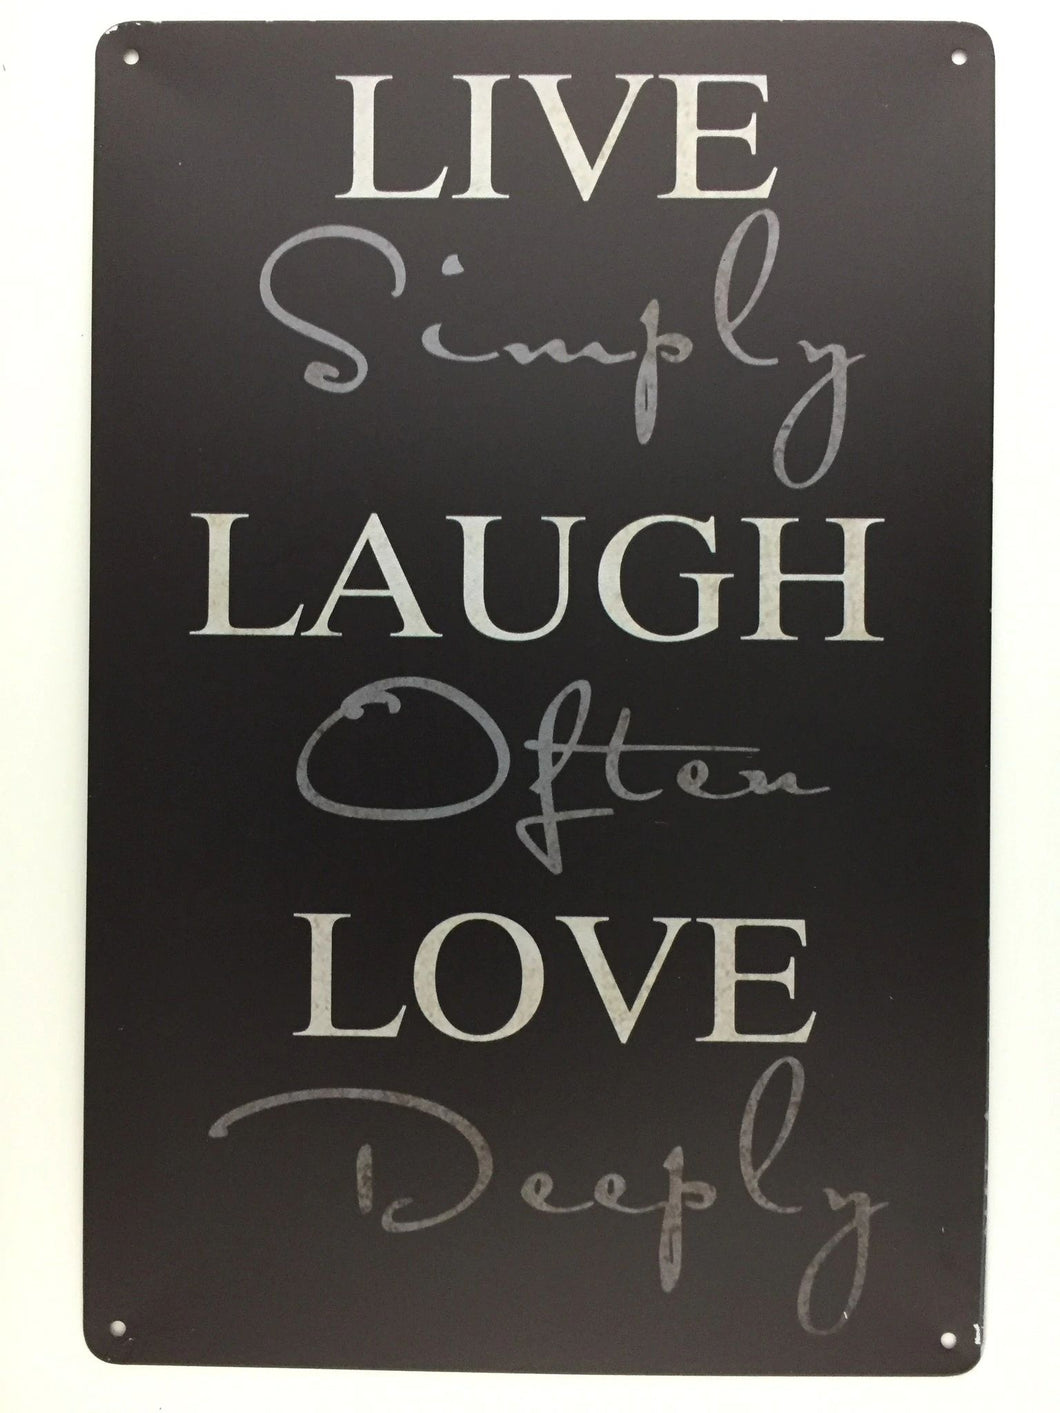 LIVE SIMPLY LAUGH OFTEN LOVE DEEPLY tin sign